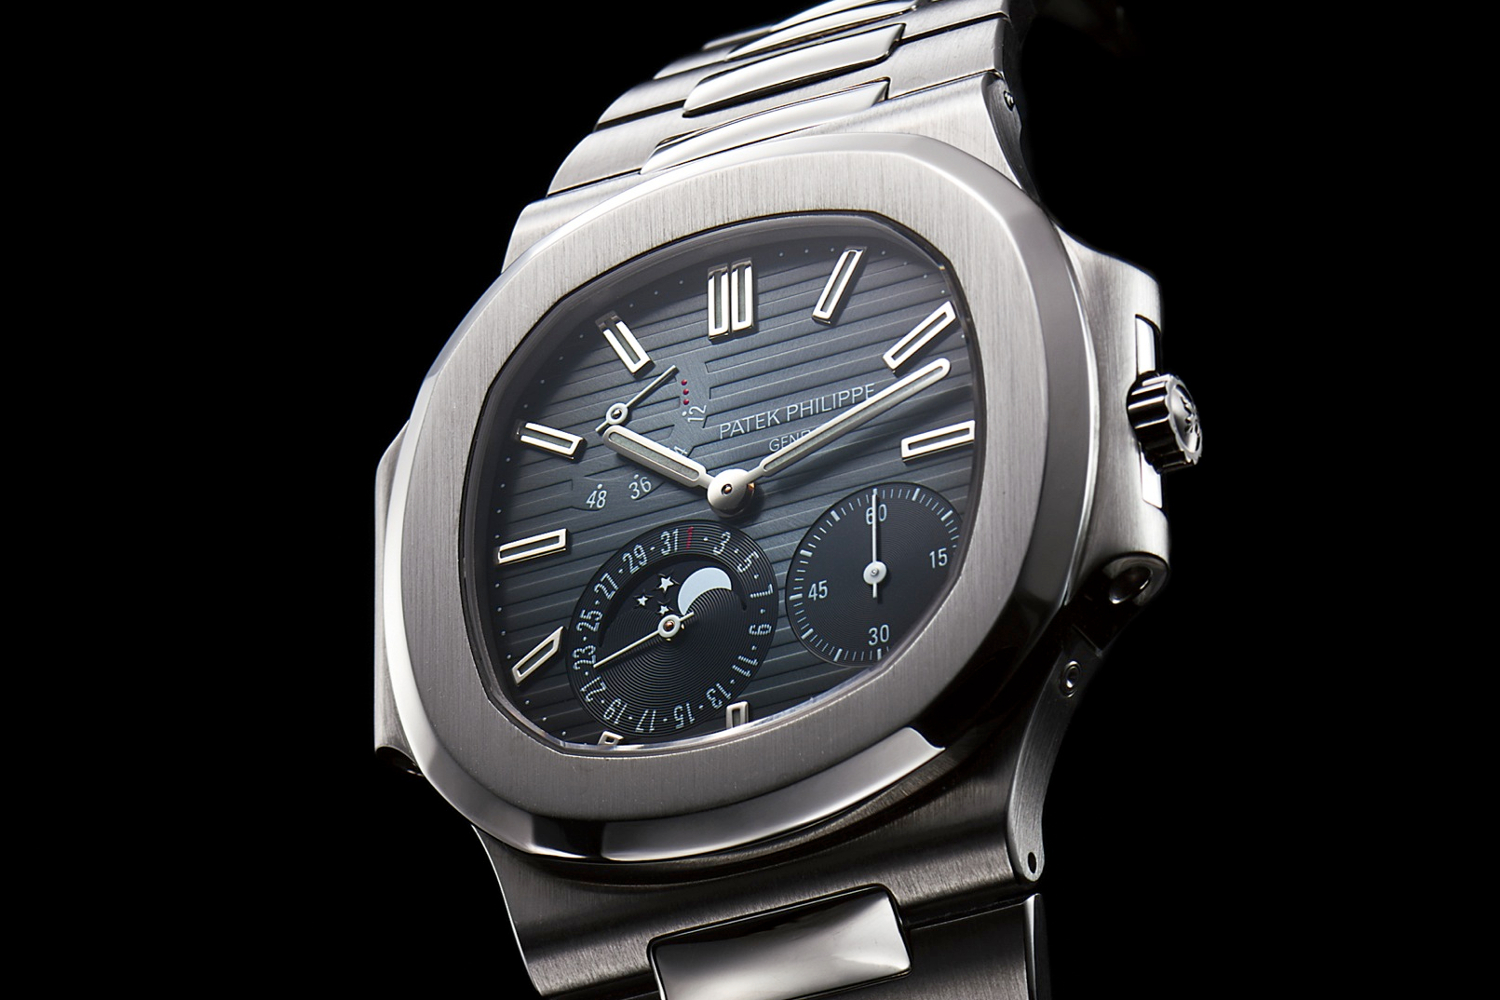 Patek Philippe Nautilus Ref. 3712 1 Antiquorum cropped.jpg